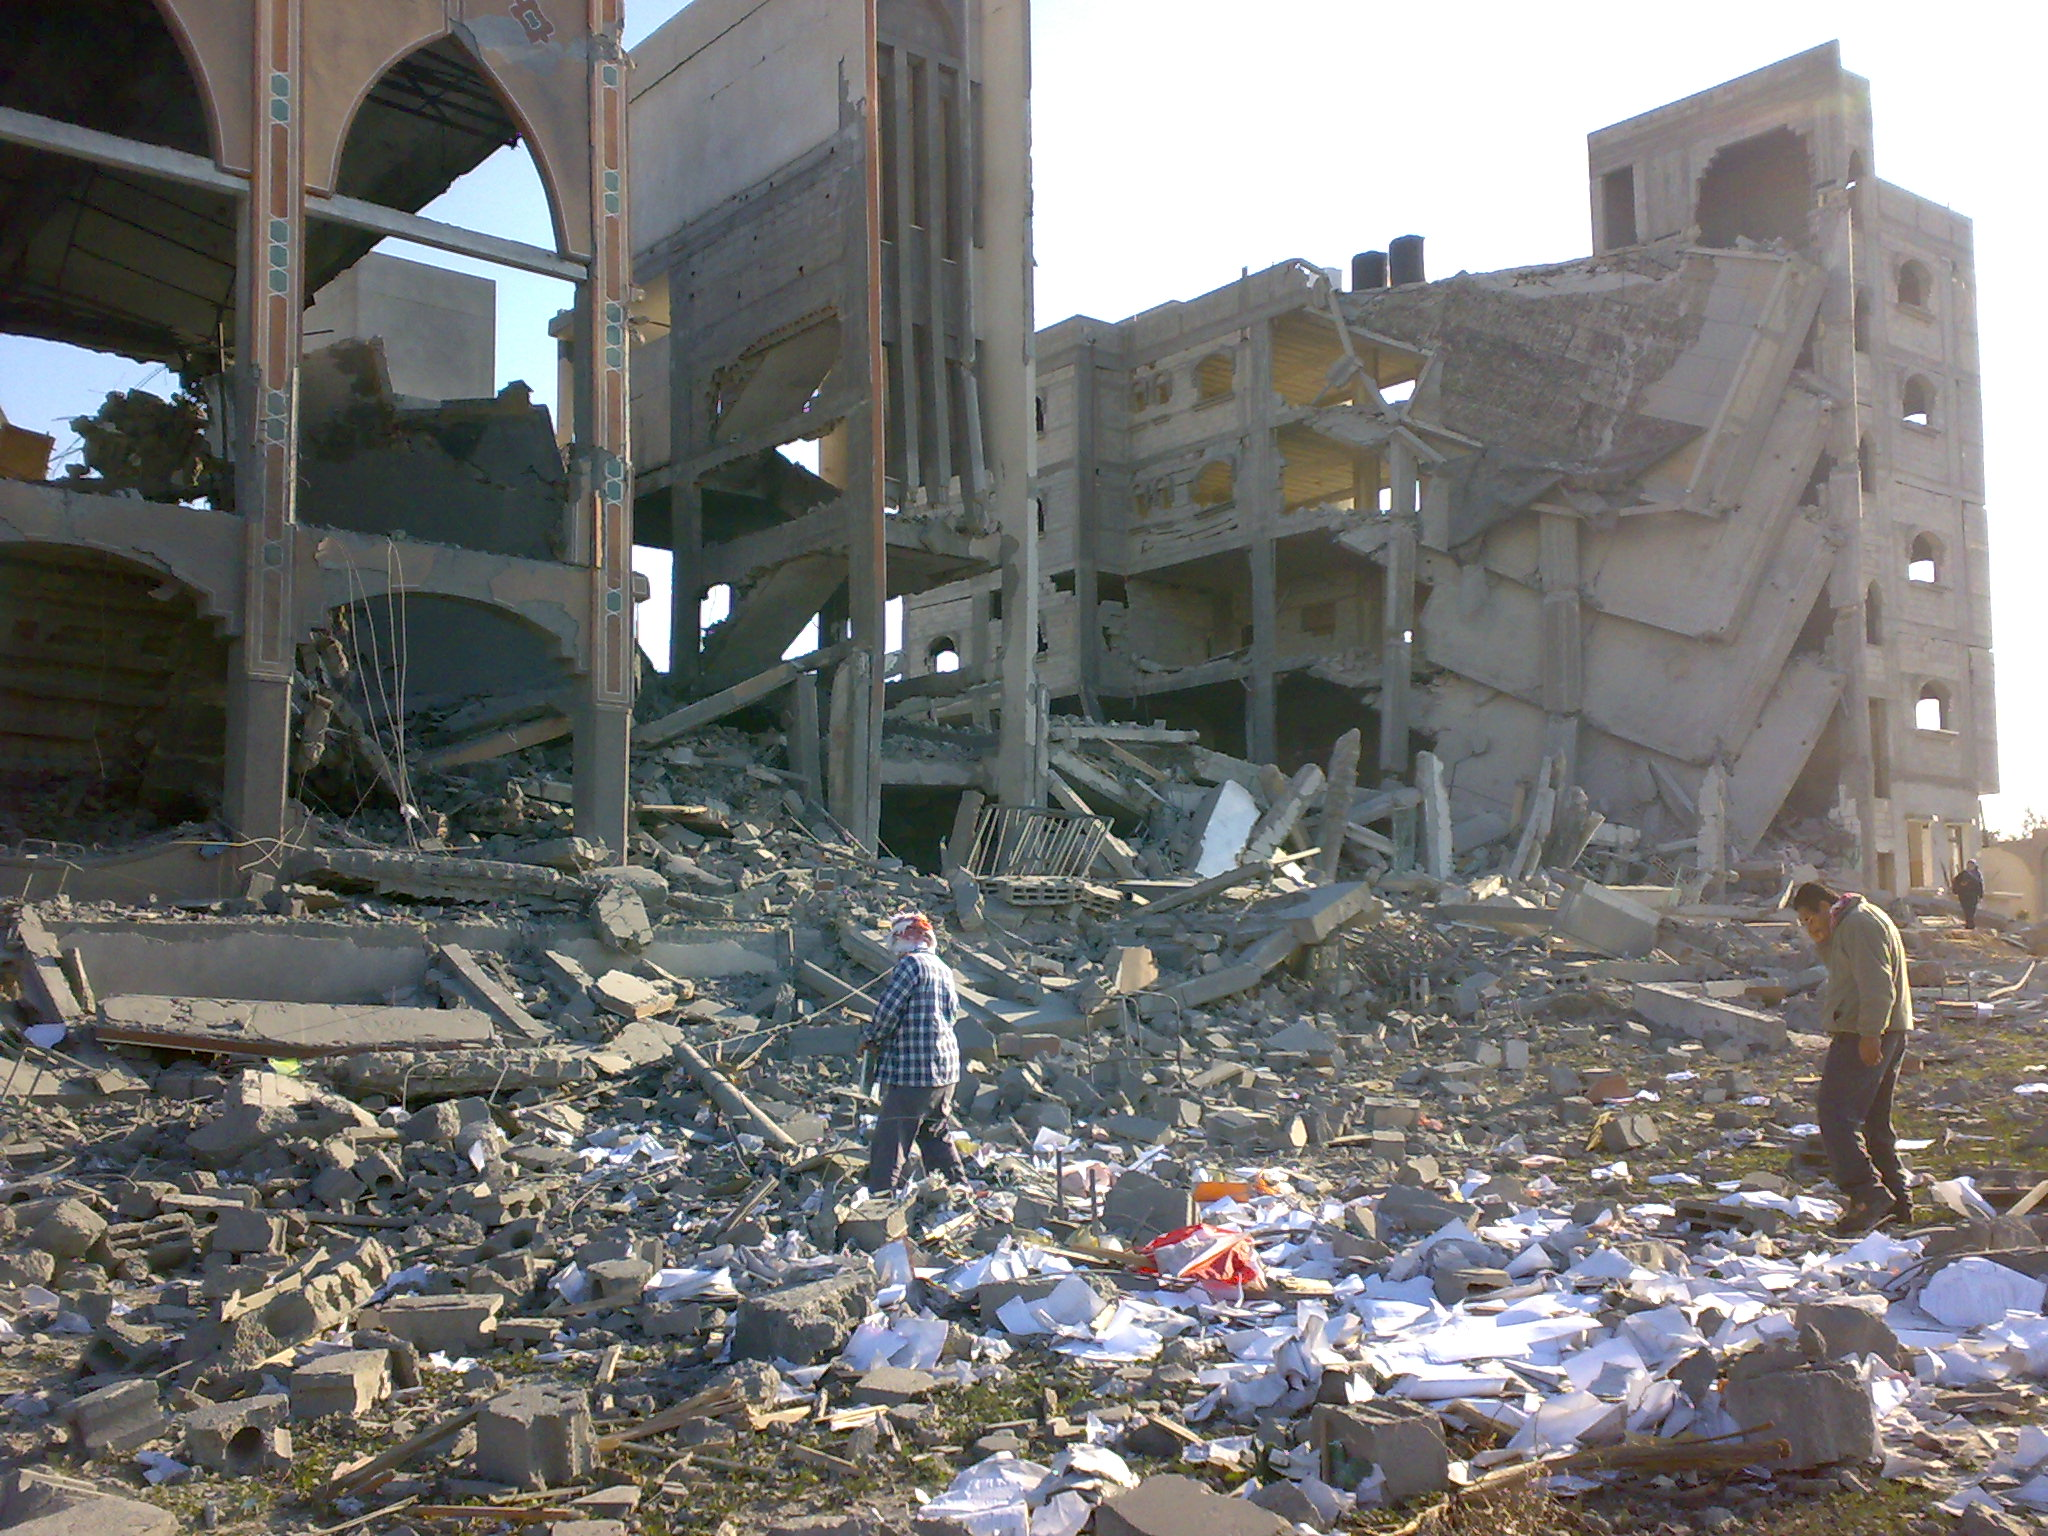 """Dar al-Fadila Association for Orphans, consisting of a school, computer center and mosque in Rafah serving 500 children, were destroyed by the Israelis during Israel's assault on Gaza. Image dated 12/1/09, found <a href=""""https://commons.wikimedia.org/wiki/File:Orphanschoolmosque.jpg"""">here</a>."""